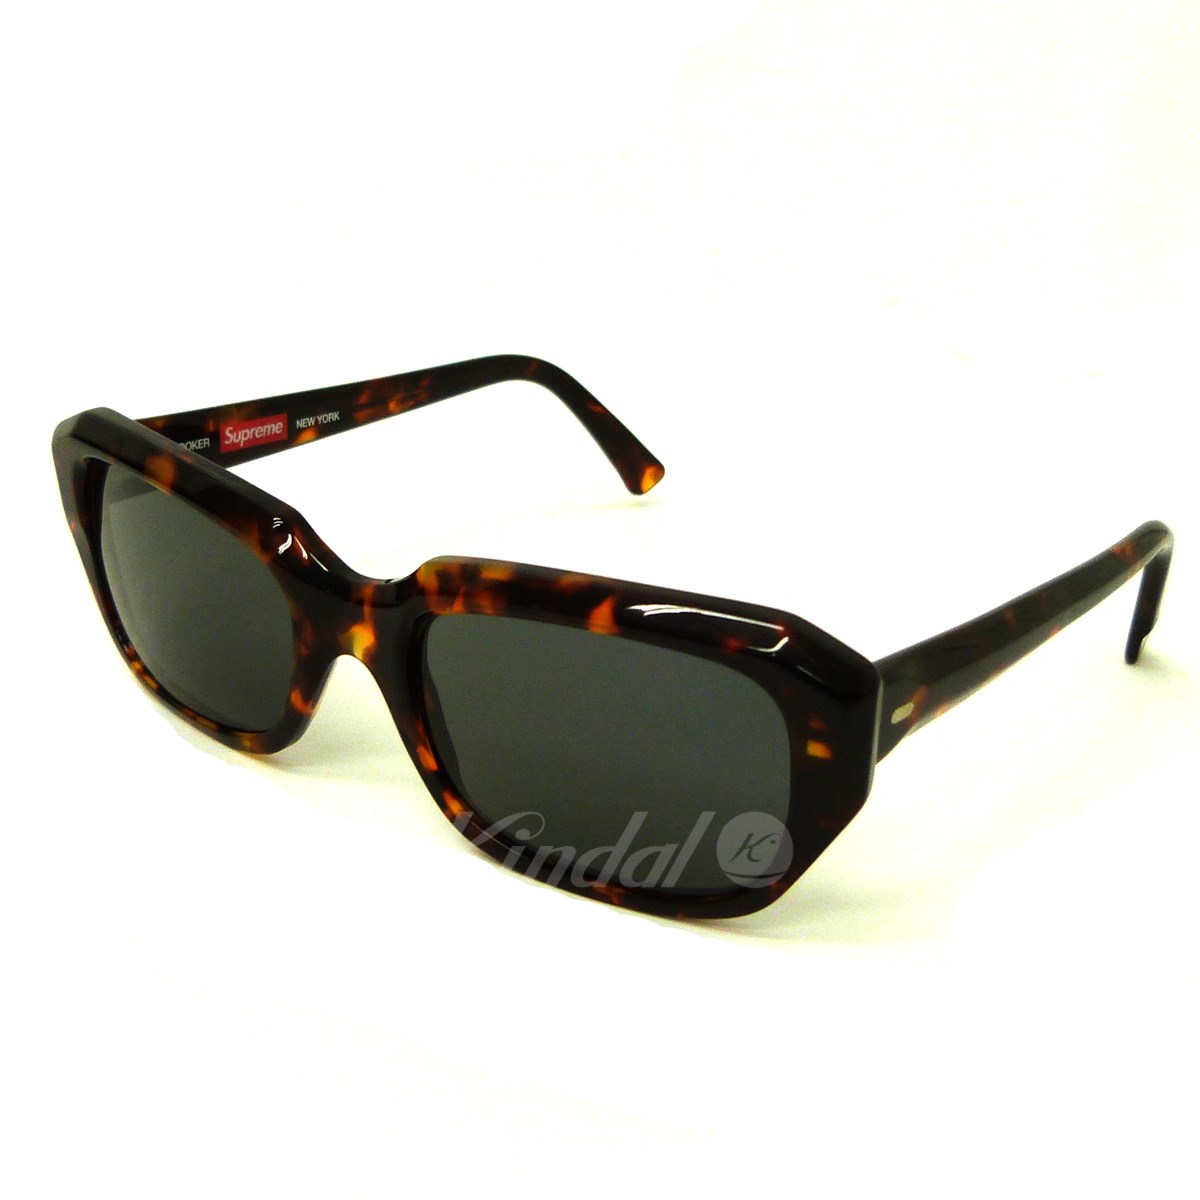 【中古】SUPREME 18SS「Booker Sunglasses」サングラス 【送料無料】 【161716】 【KIND1641】